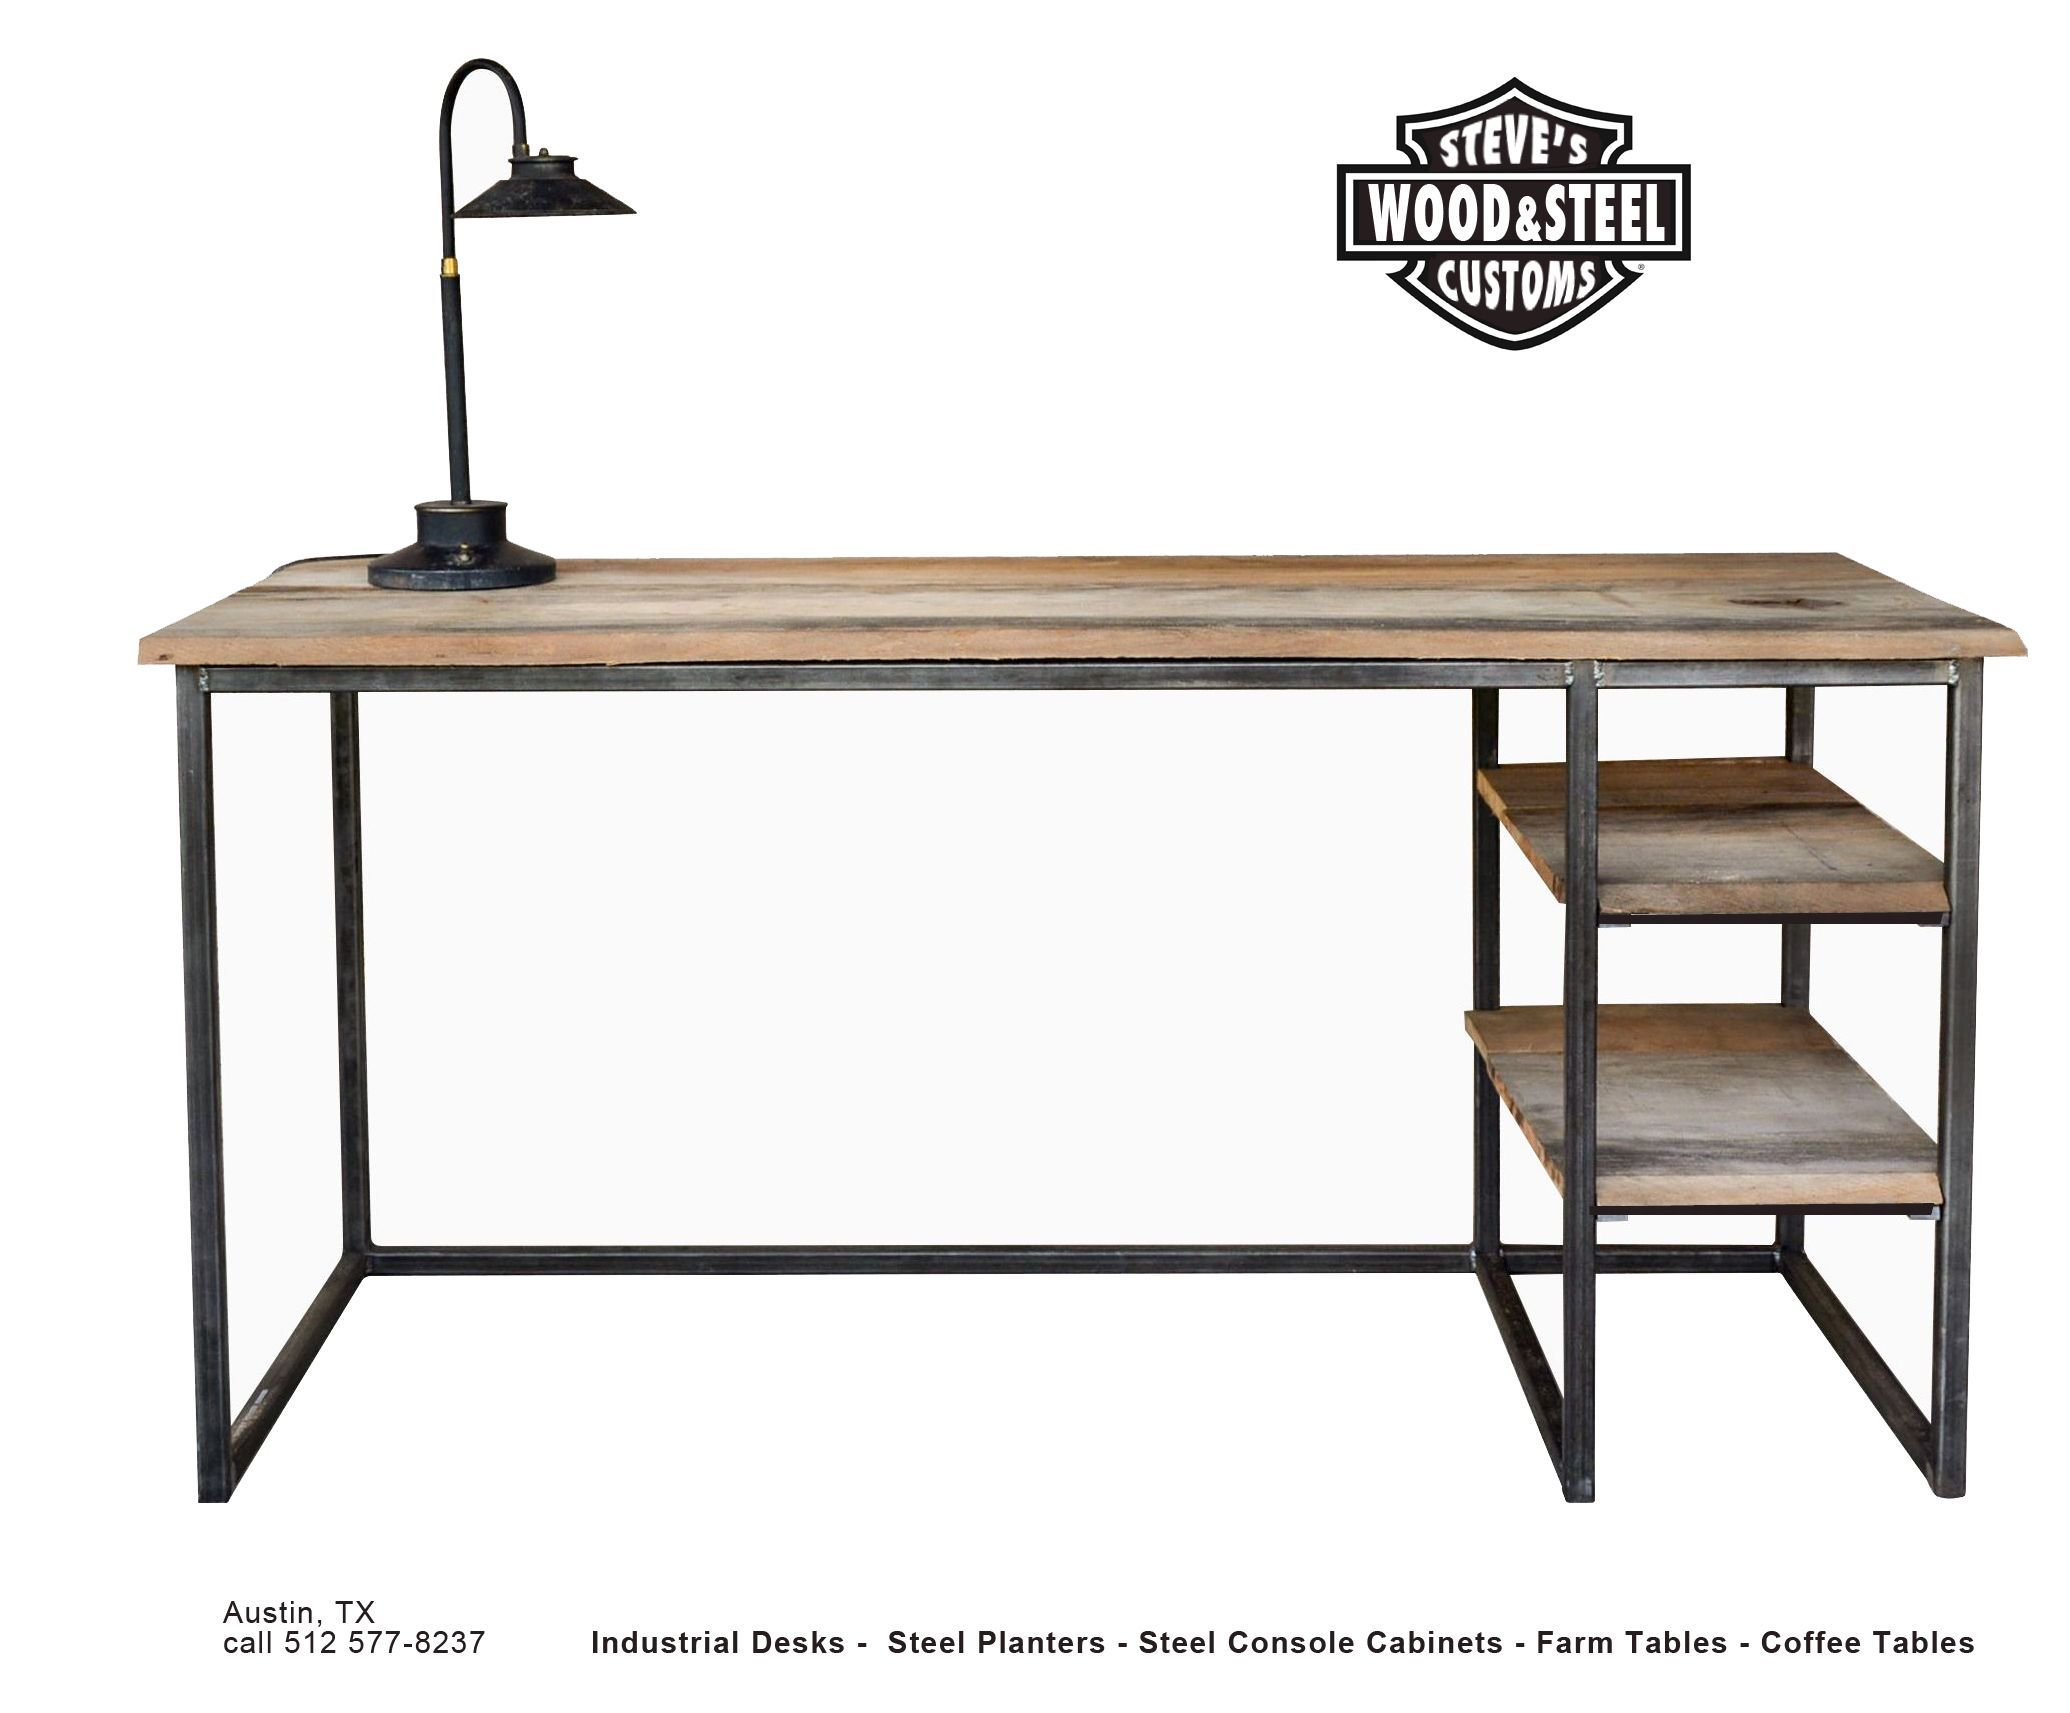 Buy A Custom Made Industrial Reclaimed Wood Desk Made To Order